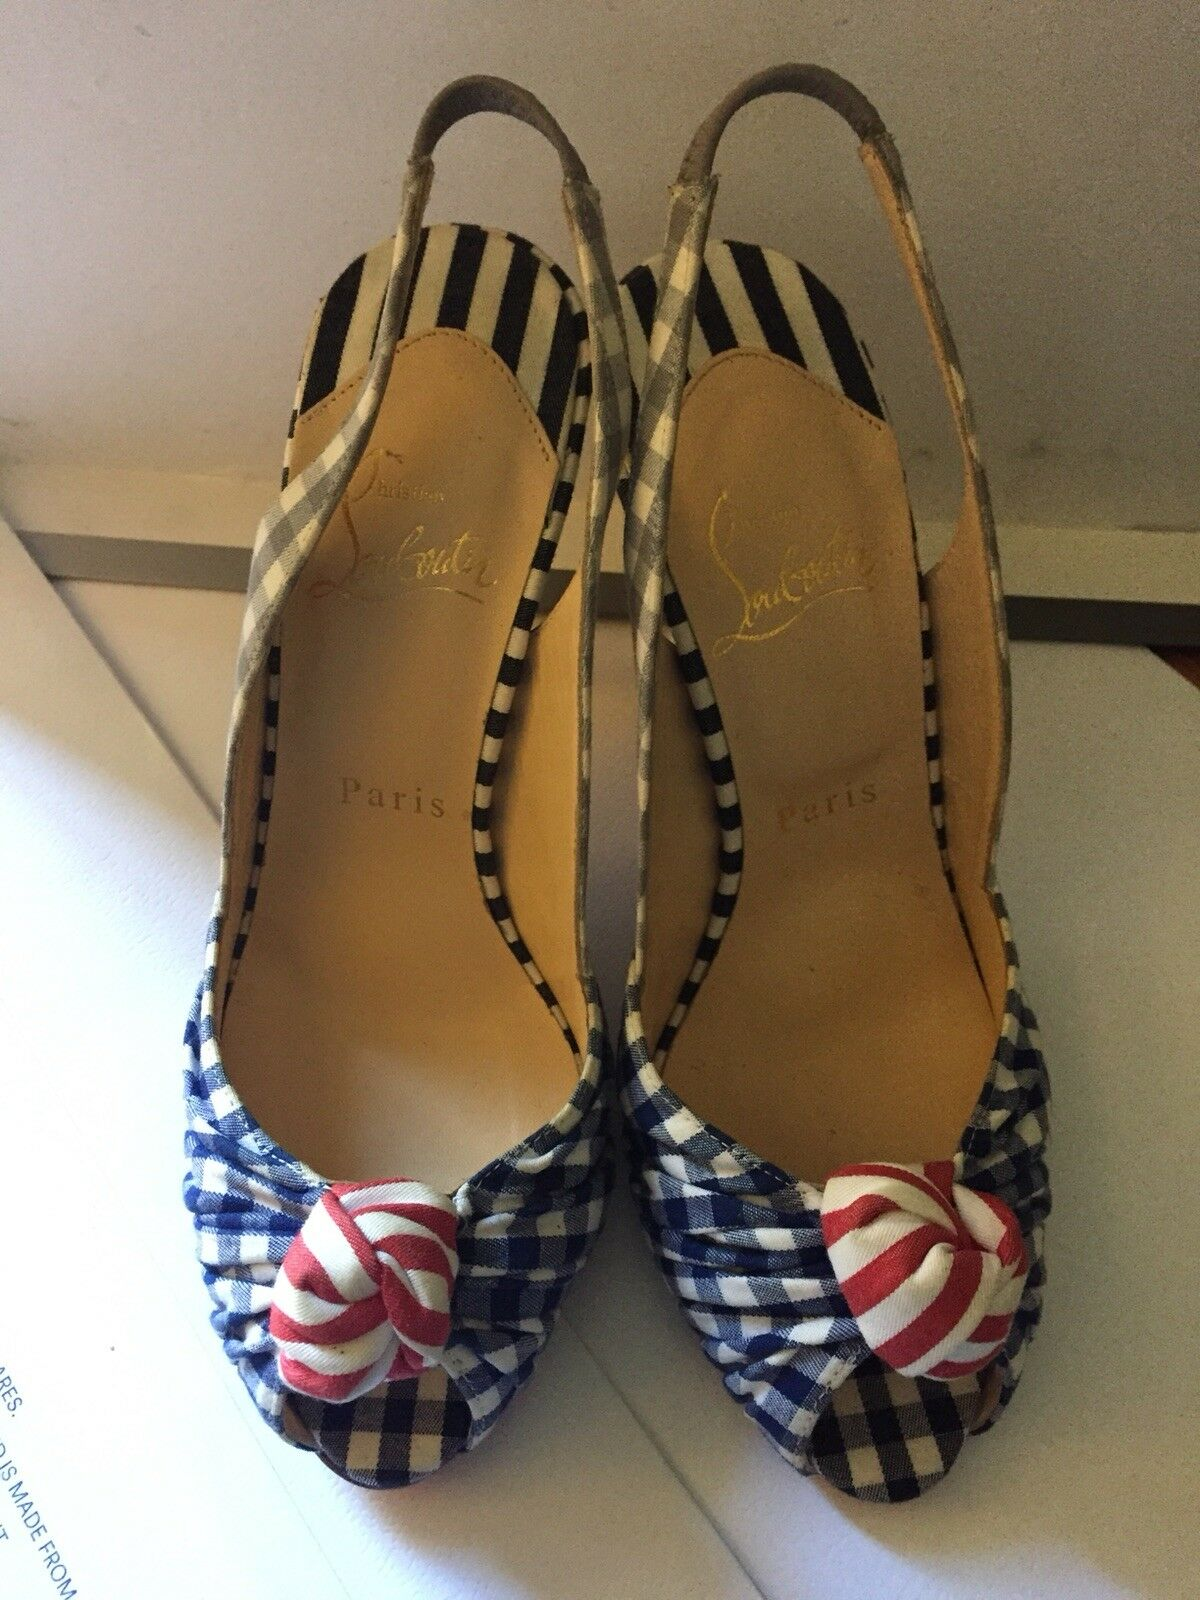 NEW NEW NEW and RARE Christian Louboutin Multi color Gingham Slingback Heels Size 36 0d79e4